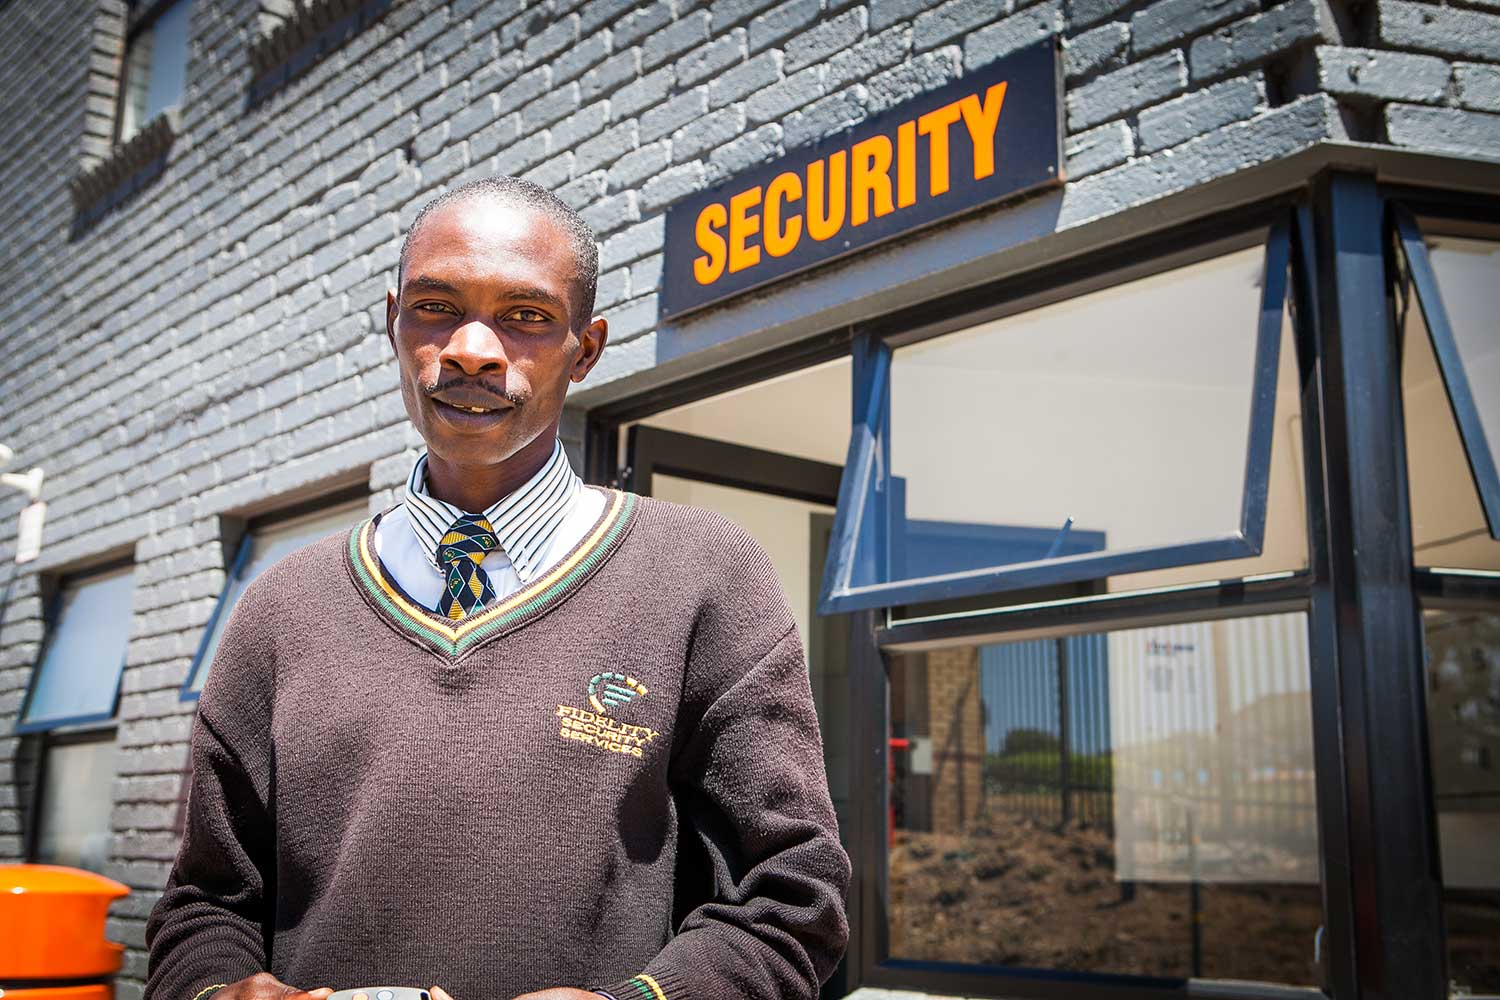 Onsite security at XtraSpace Edenvale North